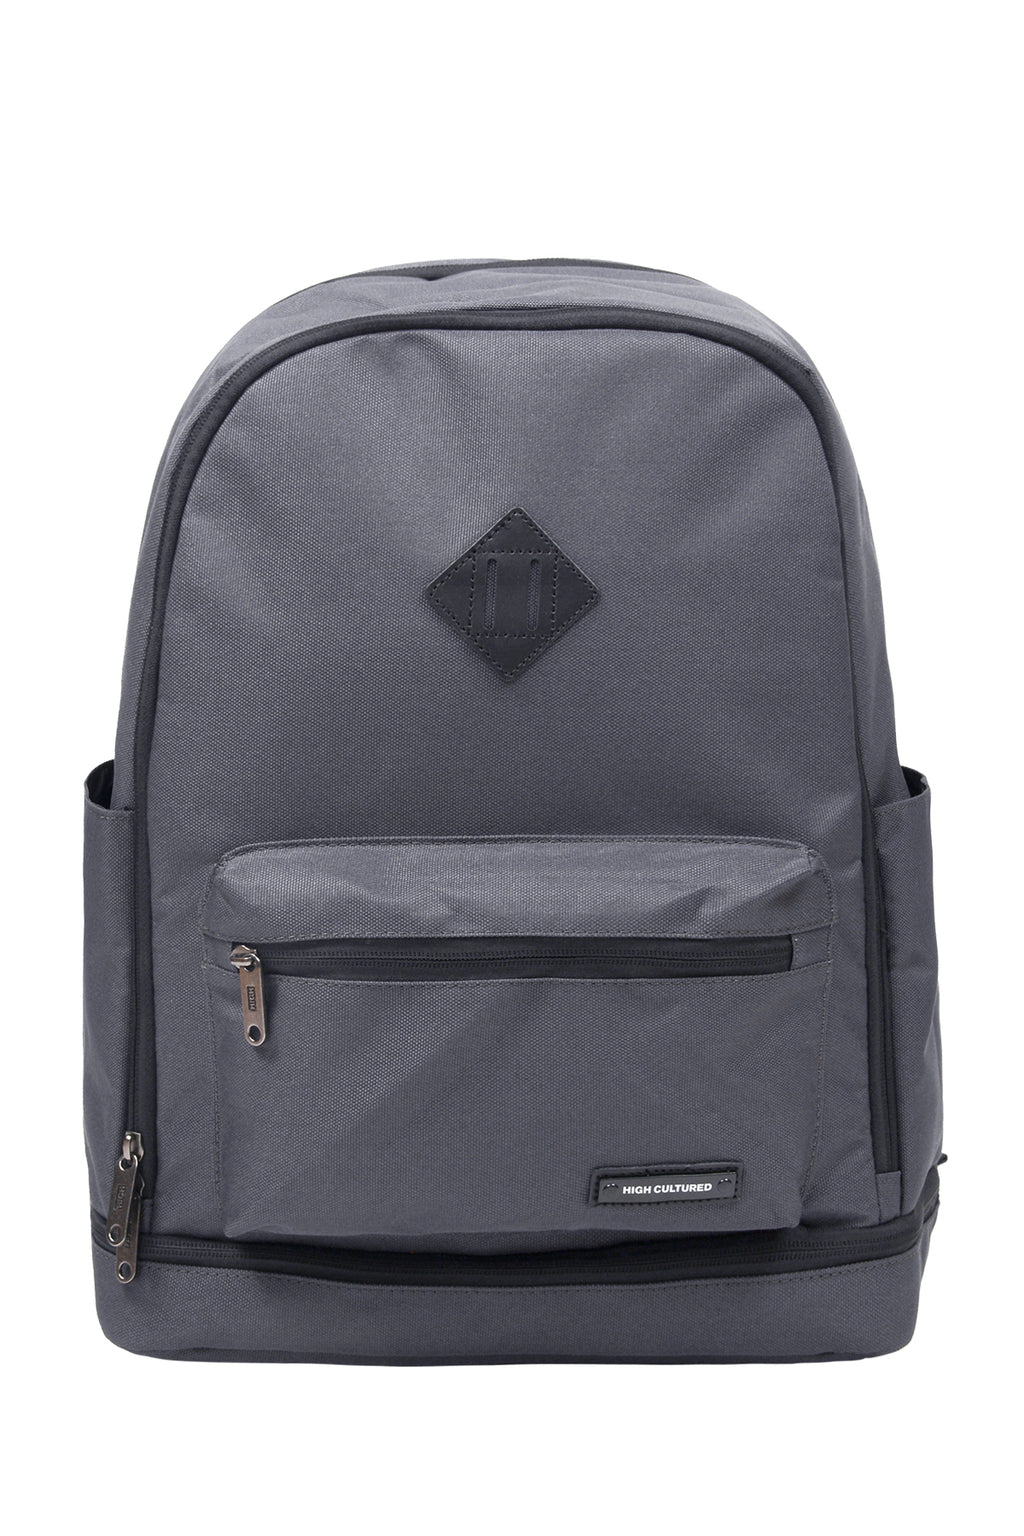 CLASSIC TRAVEL DAYBAG - 210